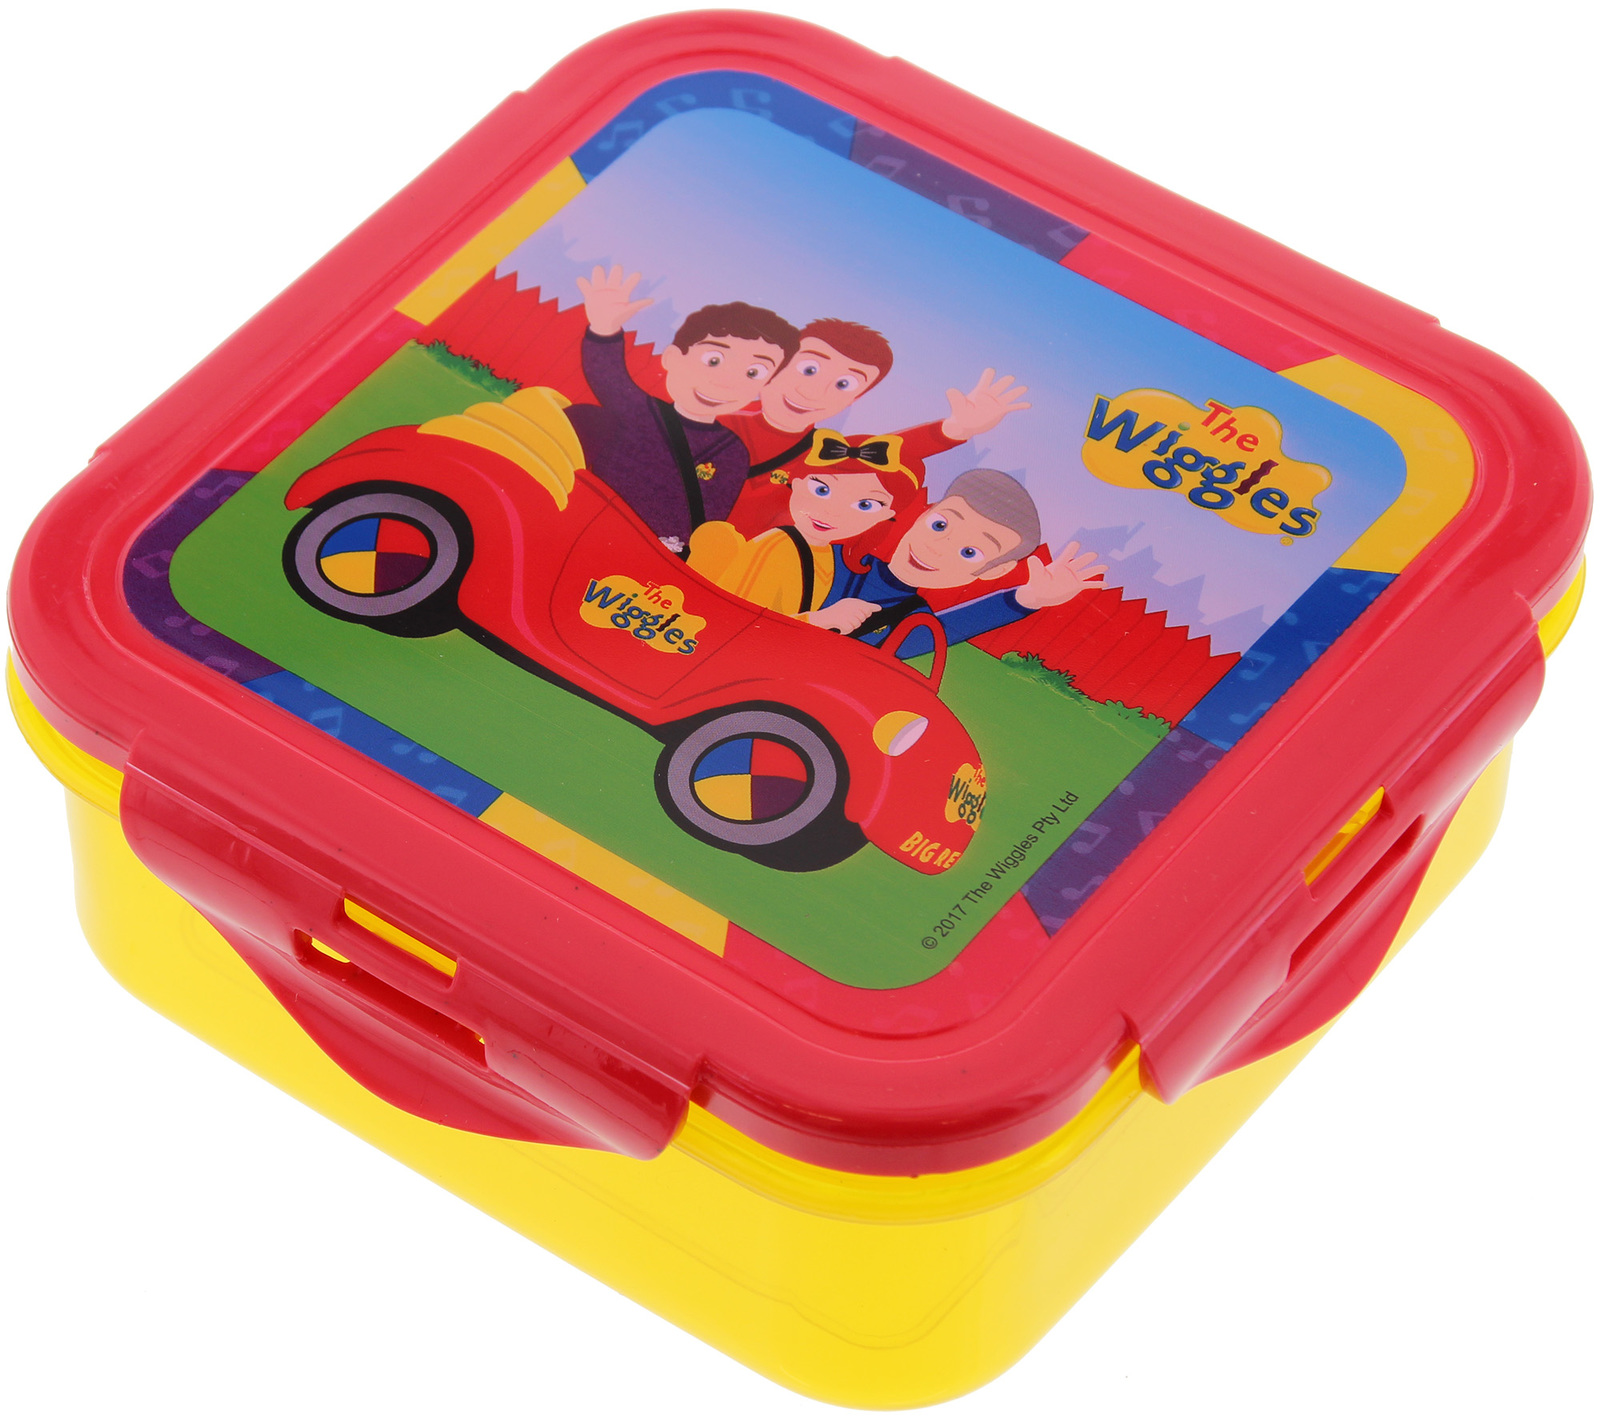 The Wiggles: Lunch Box image